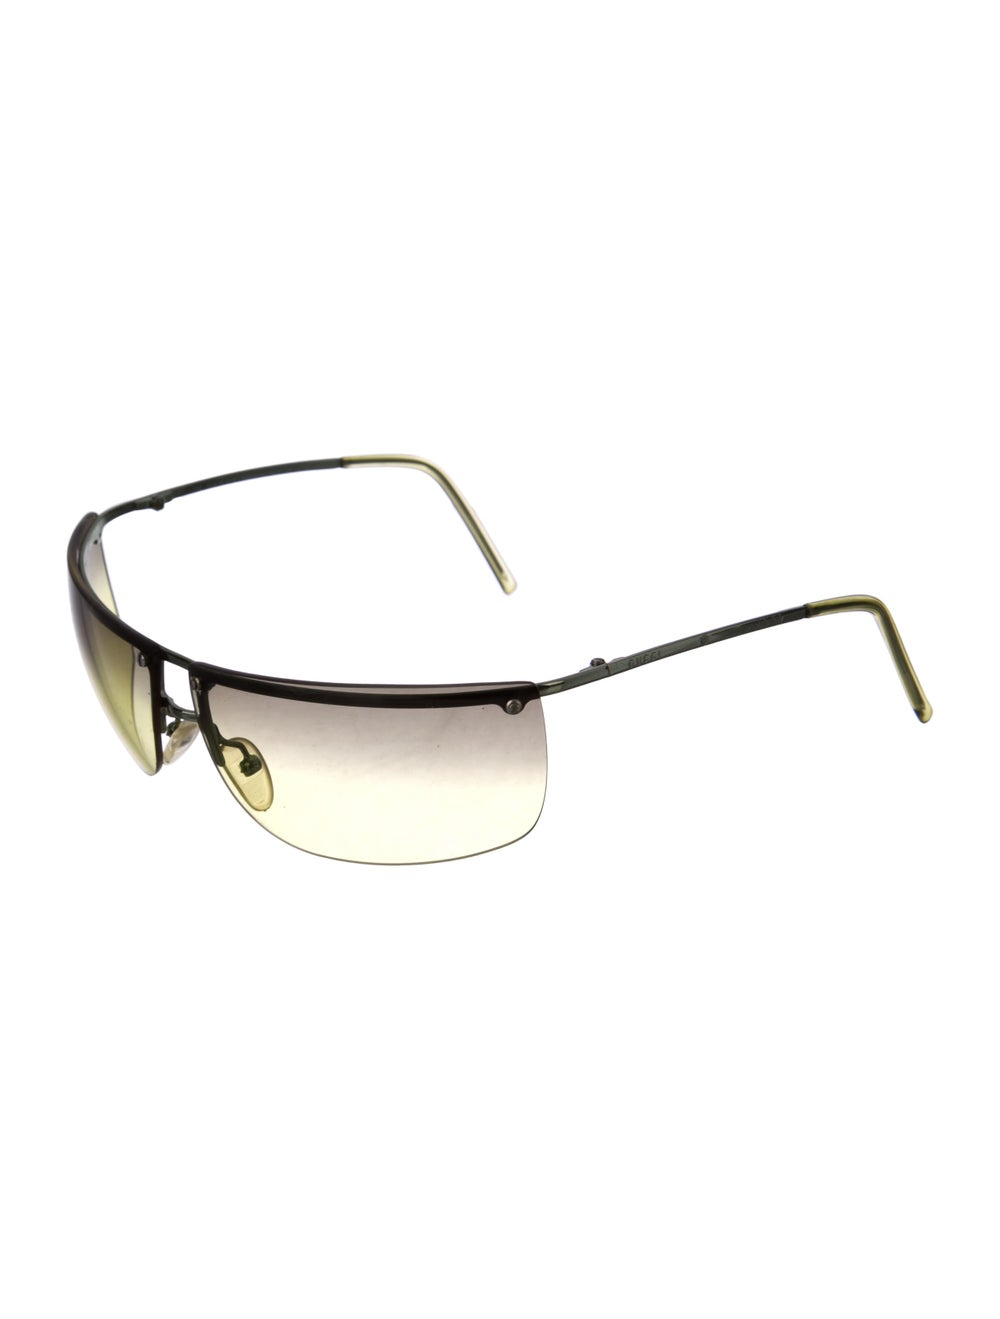 Gucci Rimless Square Sunglasses Lime - image 2